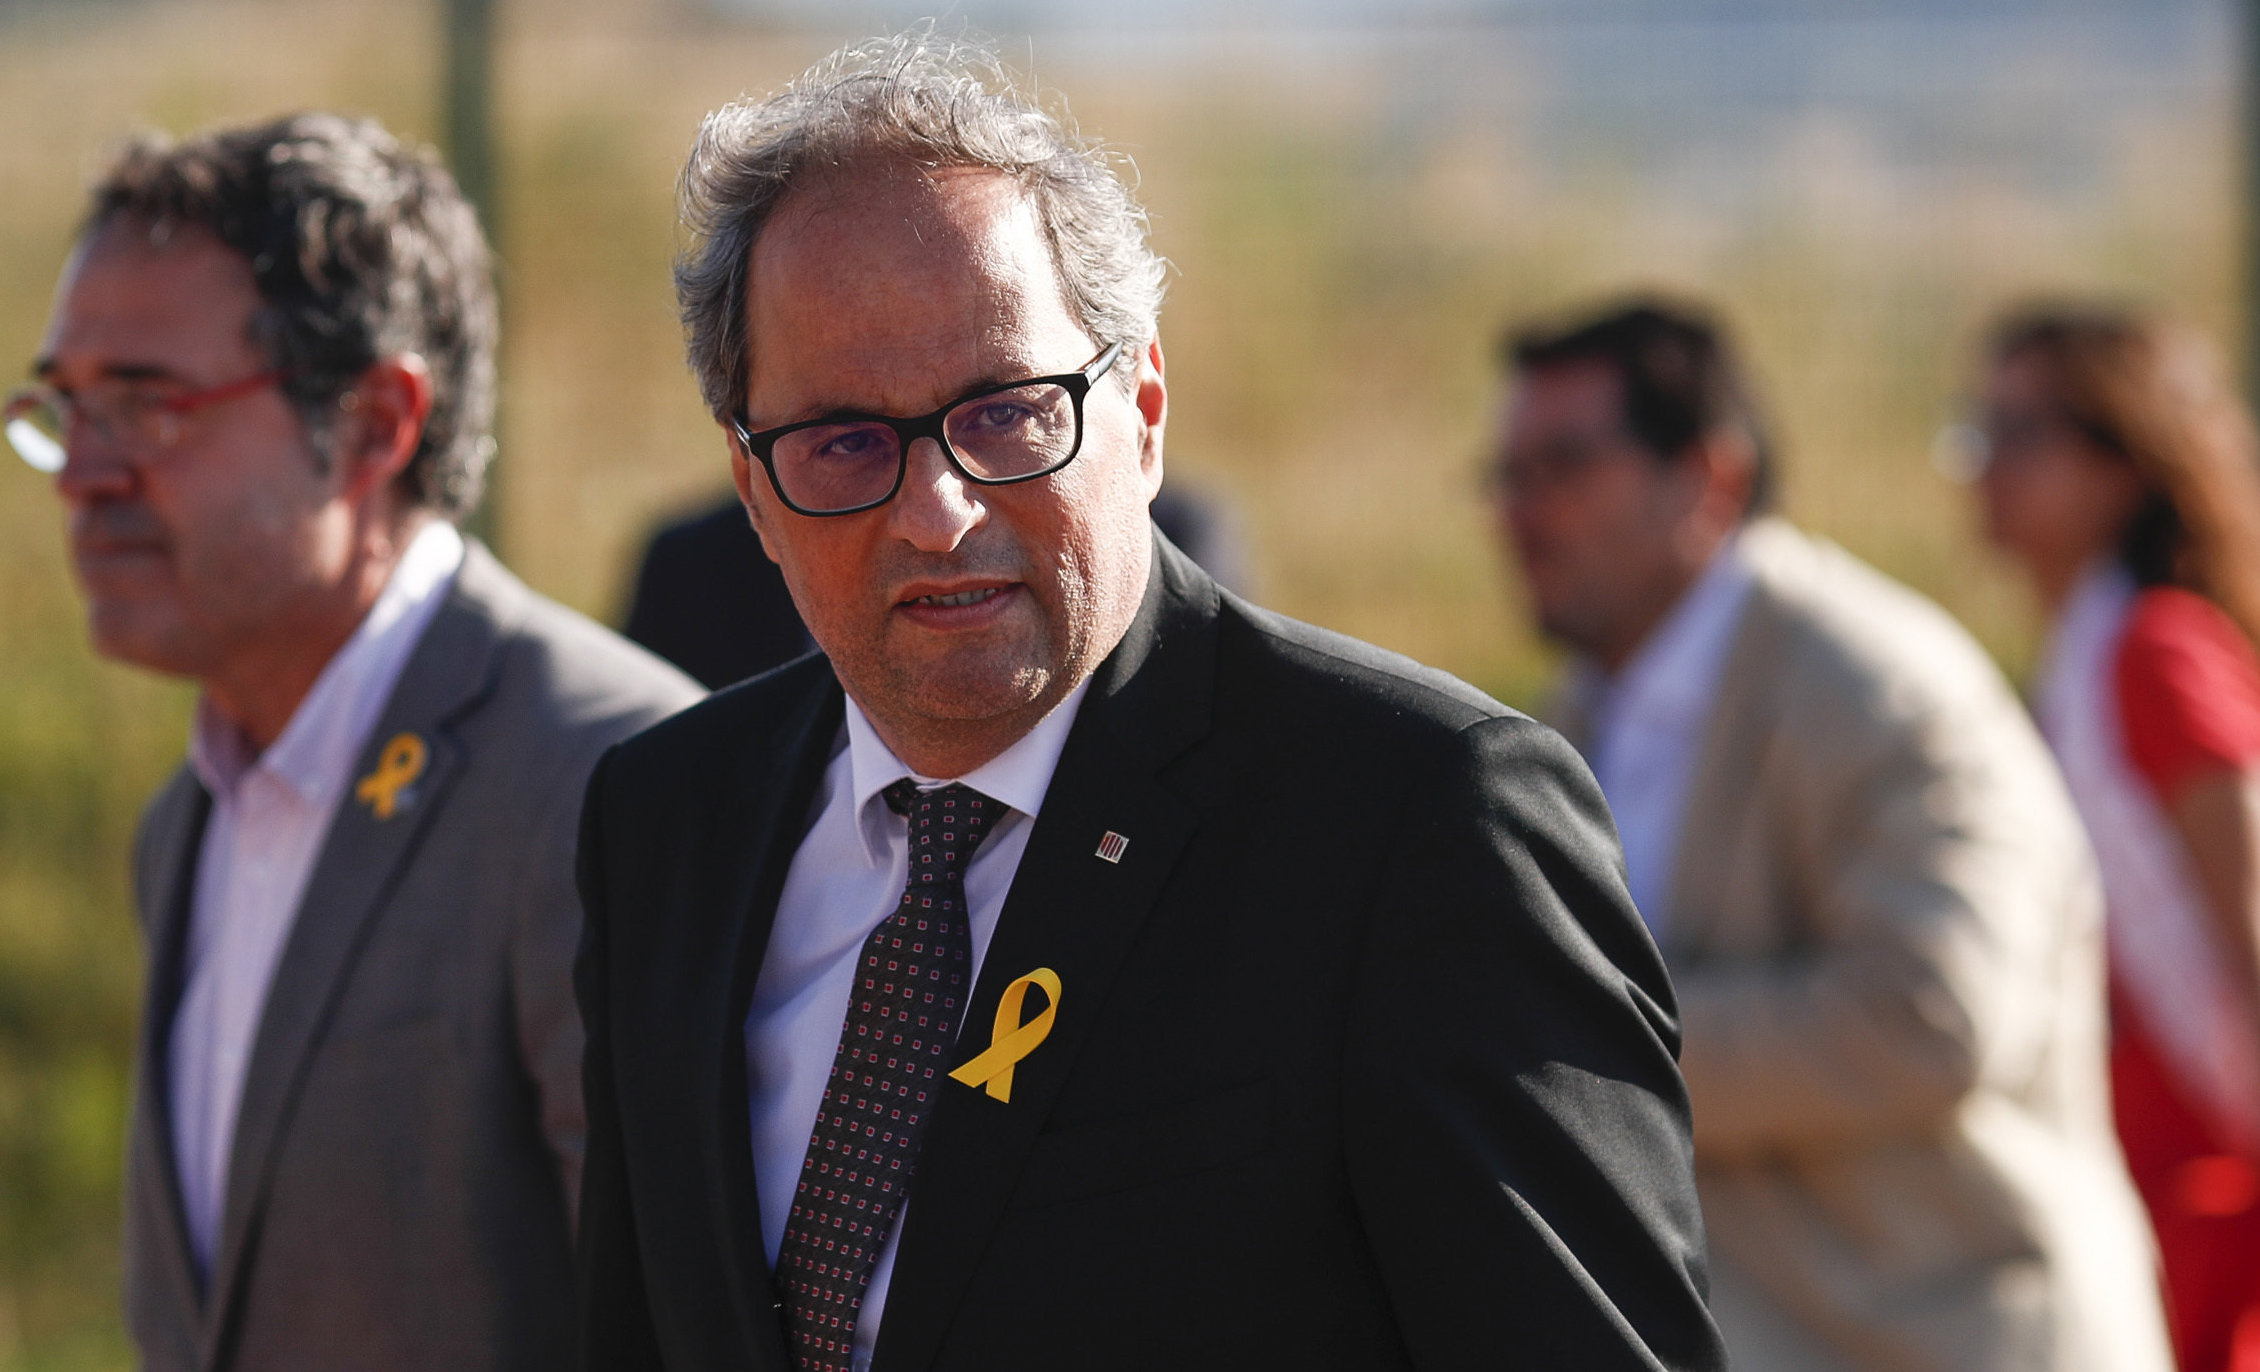 Quim Torra hit out at the decision to not hold a conference